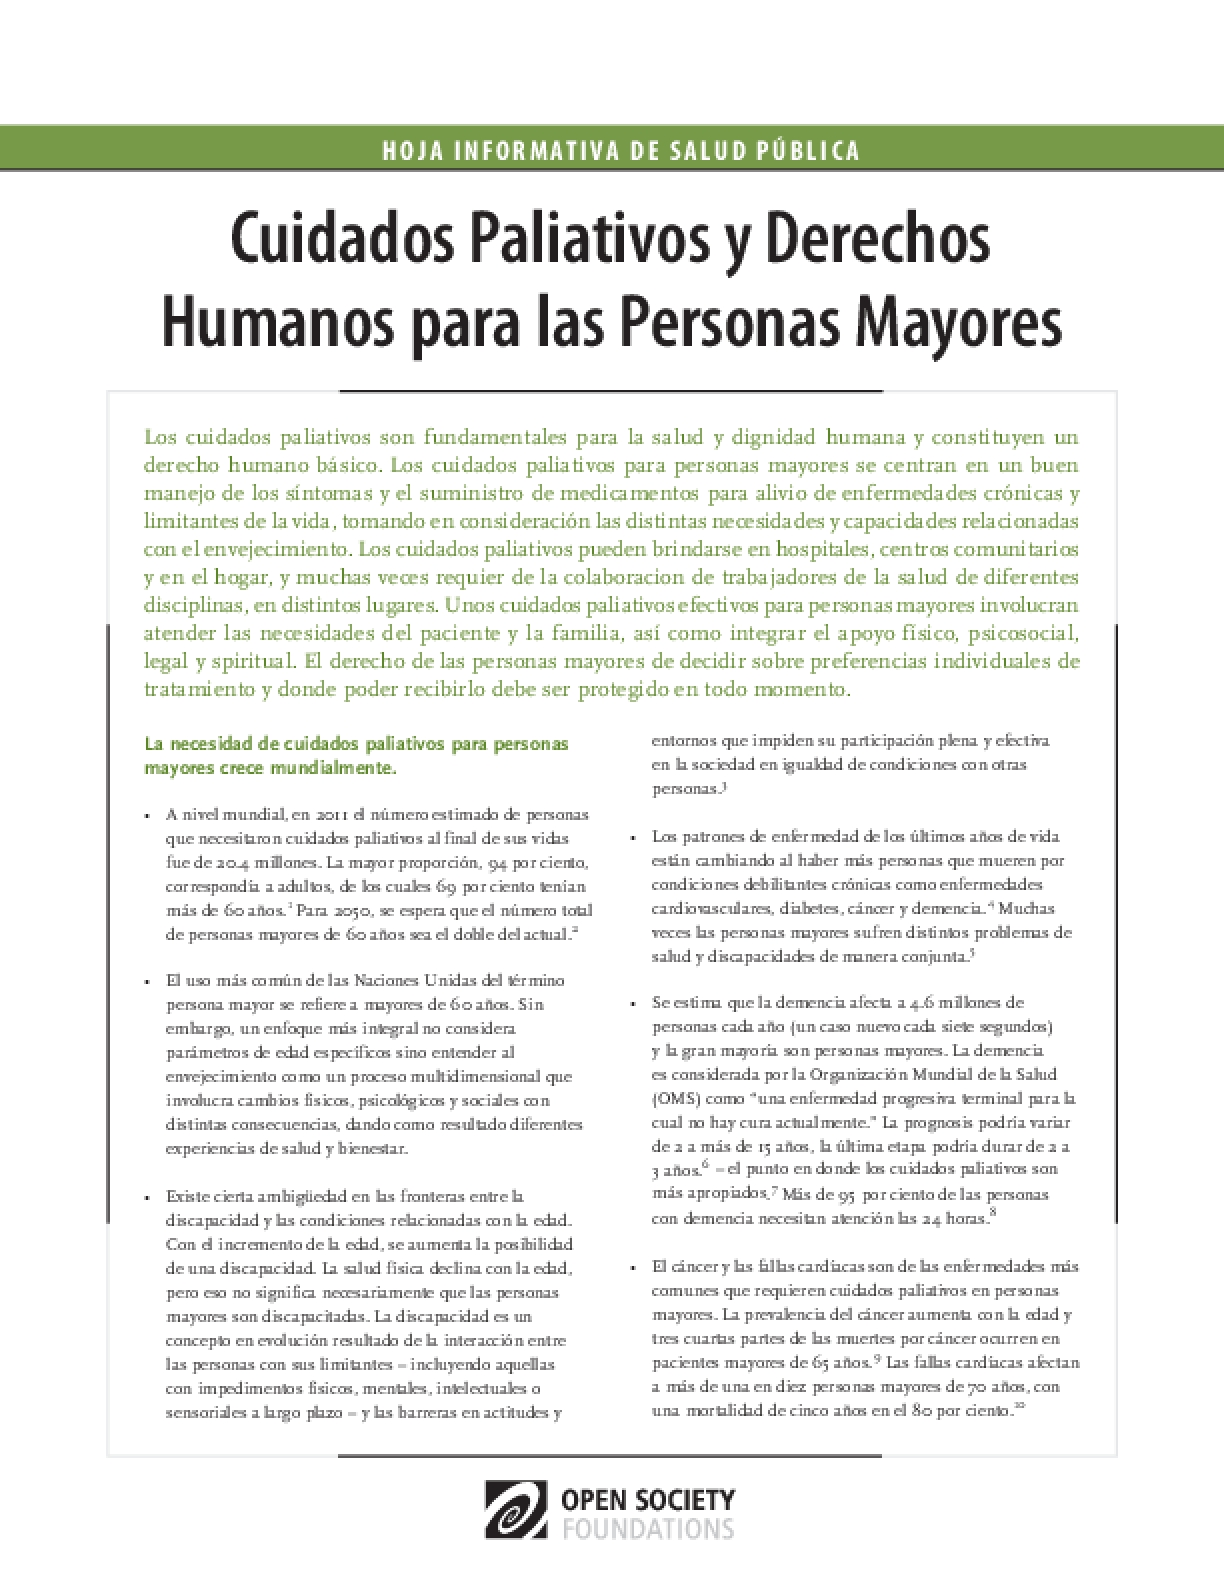 Palliative Care and Human Rights for Older Persons: Spanish